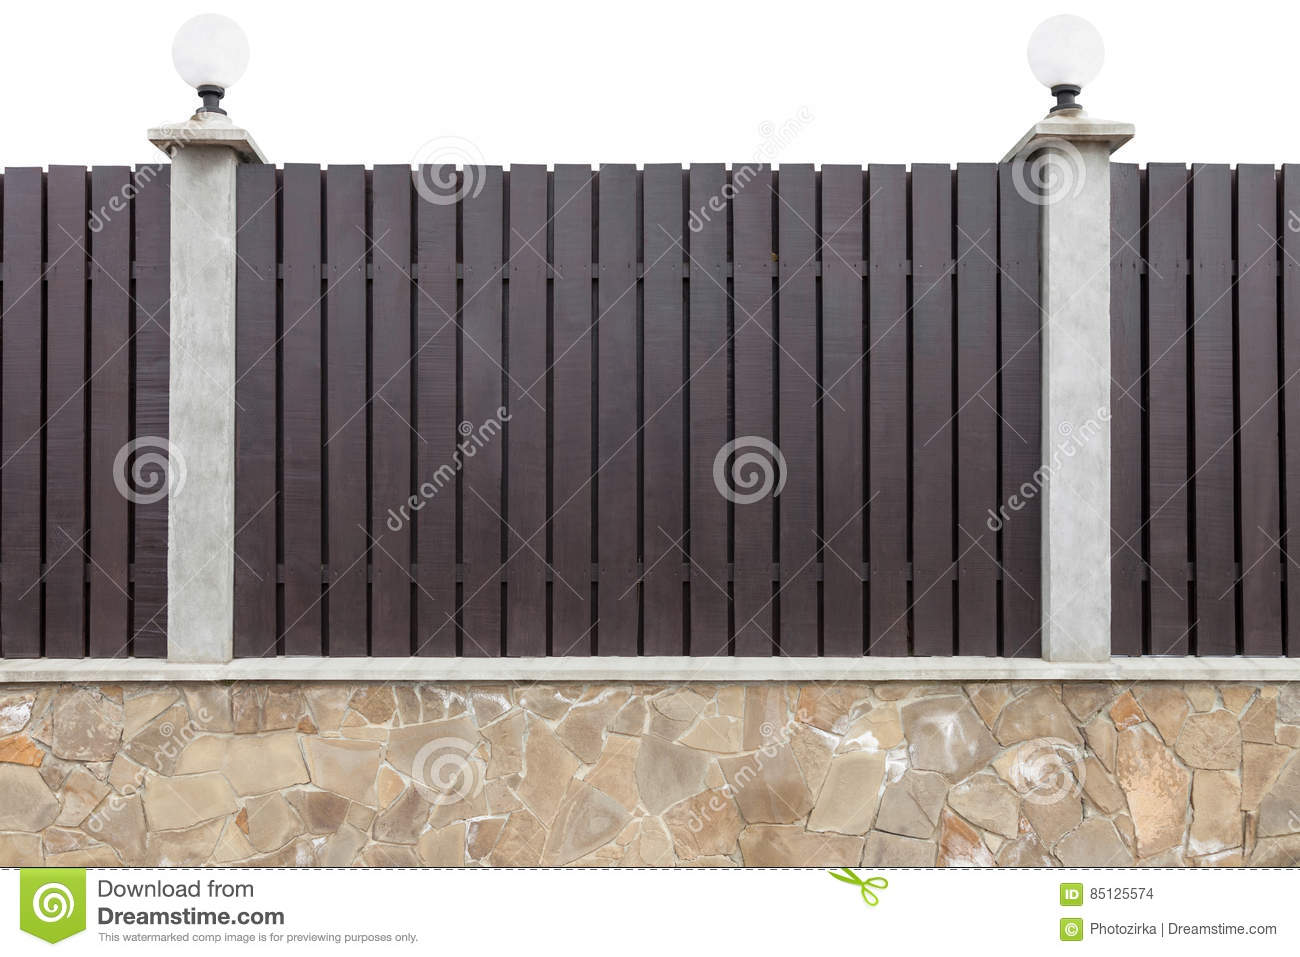 Wooden Fence With Concrete Pillars Stock Photo Image Of